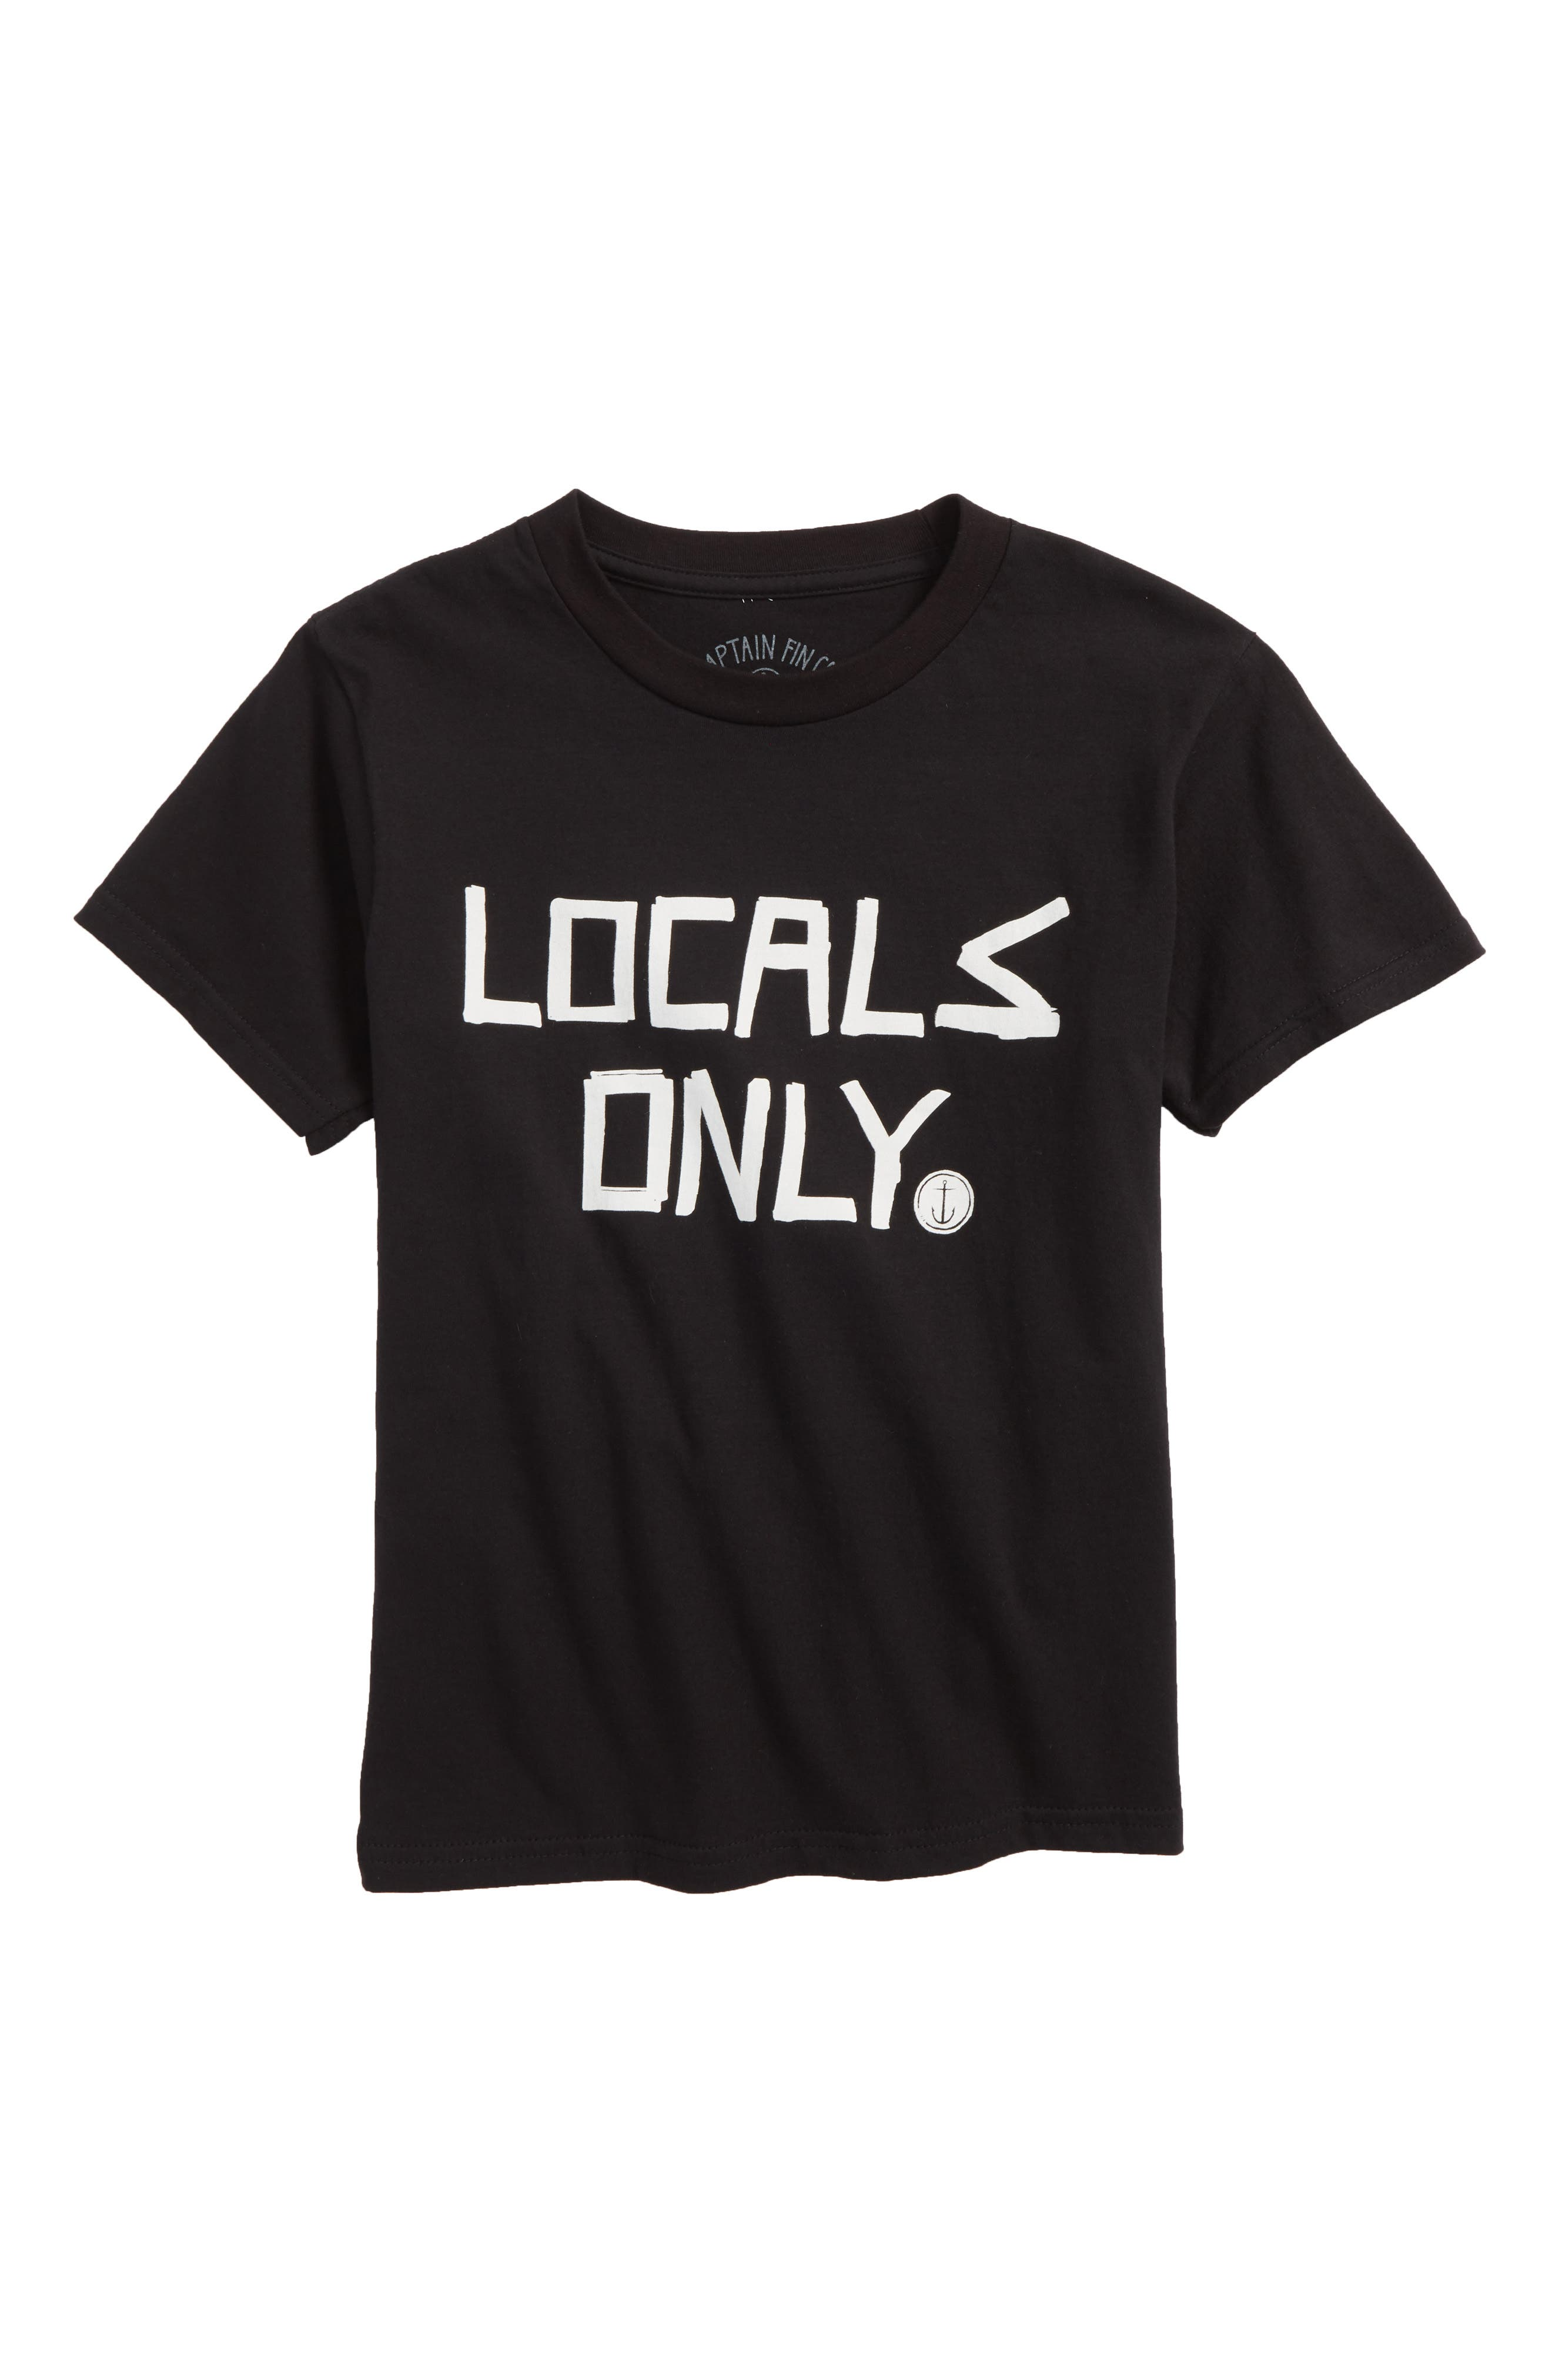 Captain Fin Locals Only T-Shirt (Big Boys)